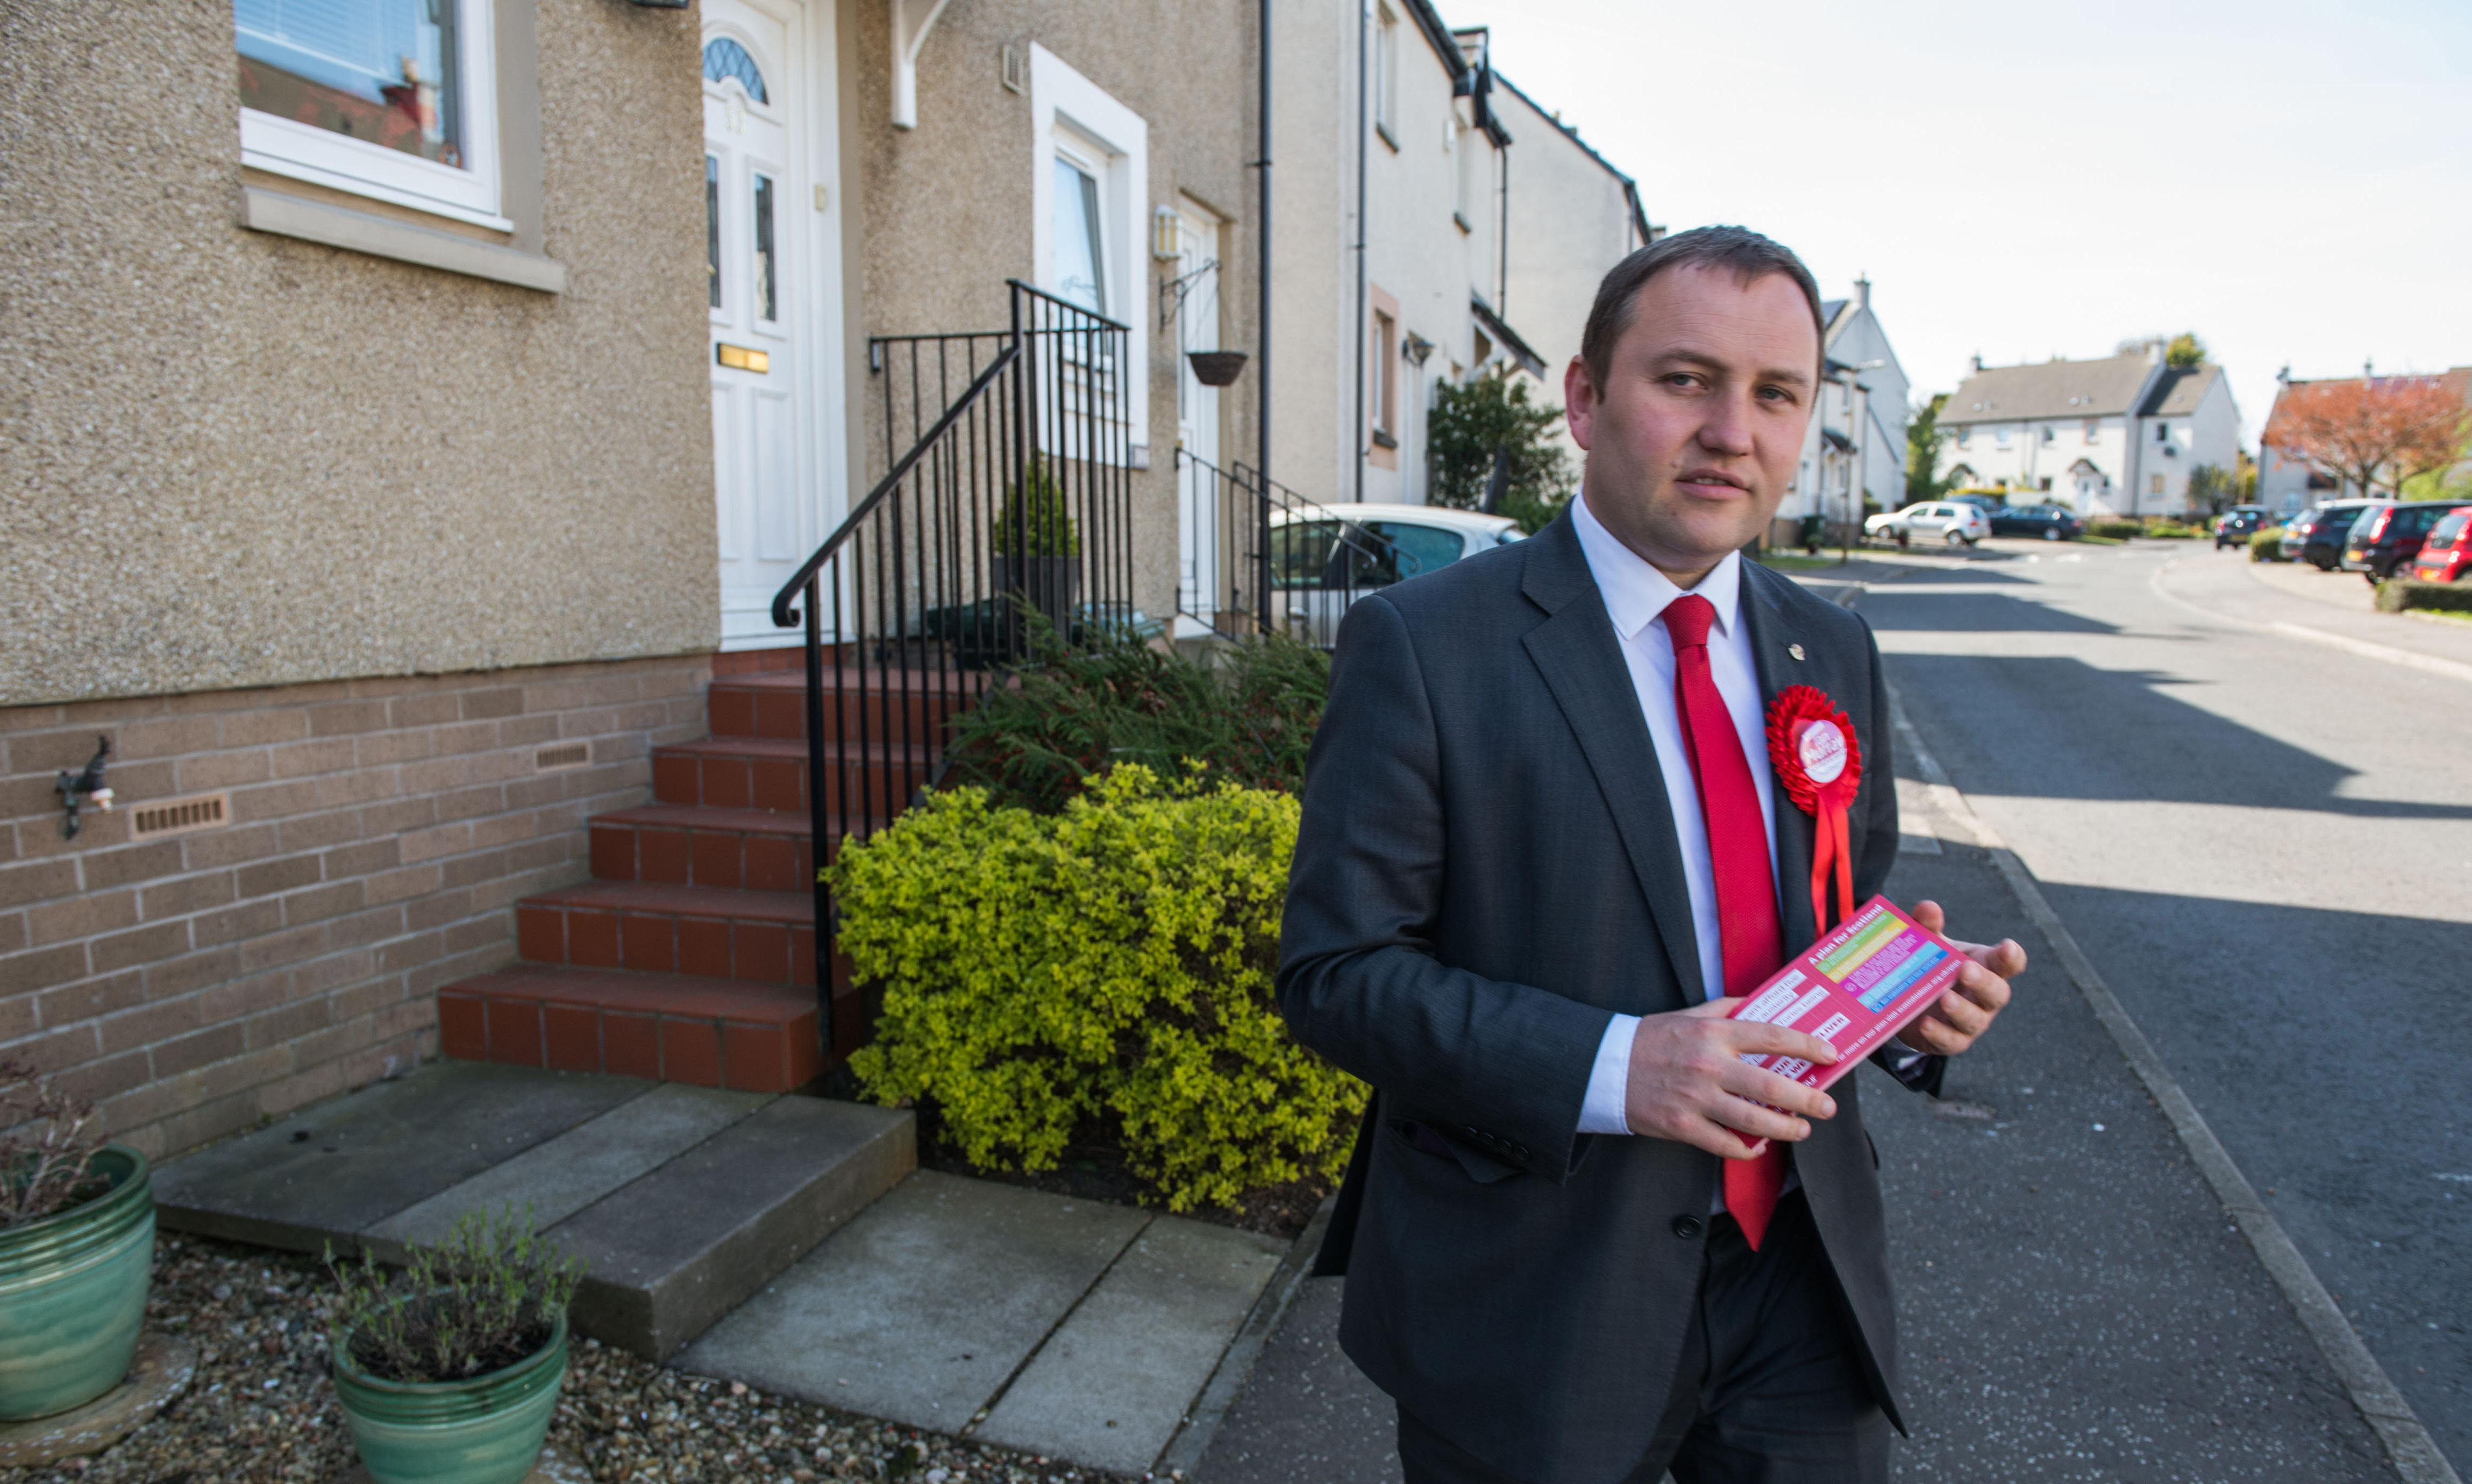 Union pushes for deselection of Scottish Labour MP Ian Murray